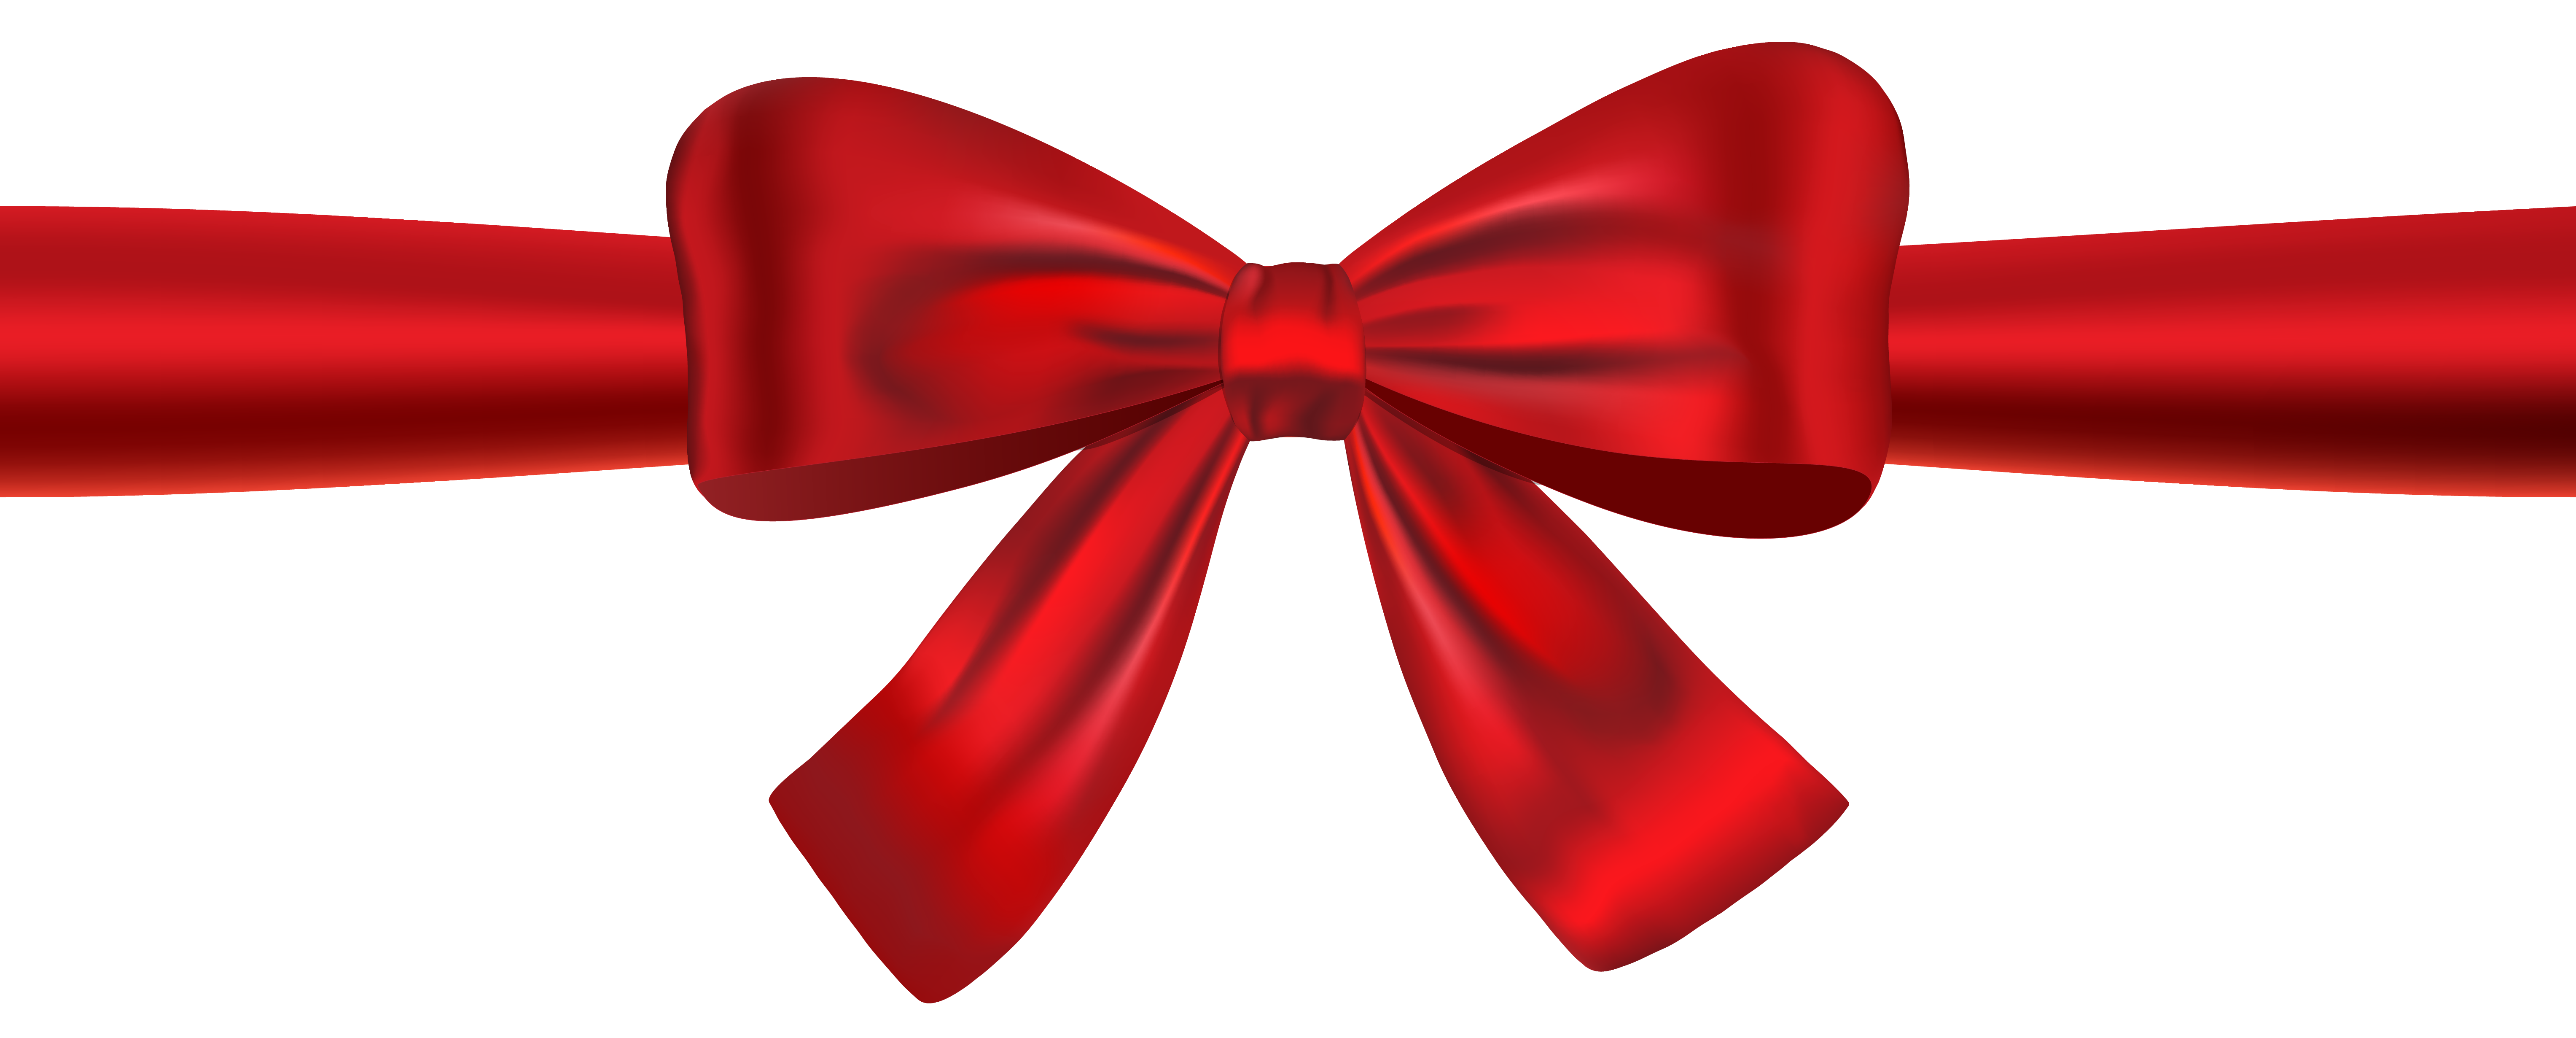 6110x2461 Red Ribbon And Bow Png Clipart Imageu200b Gallery Yopriceville